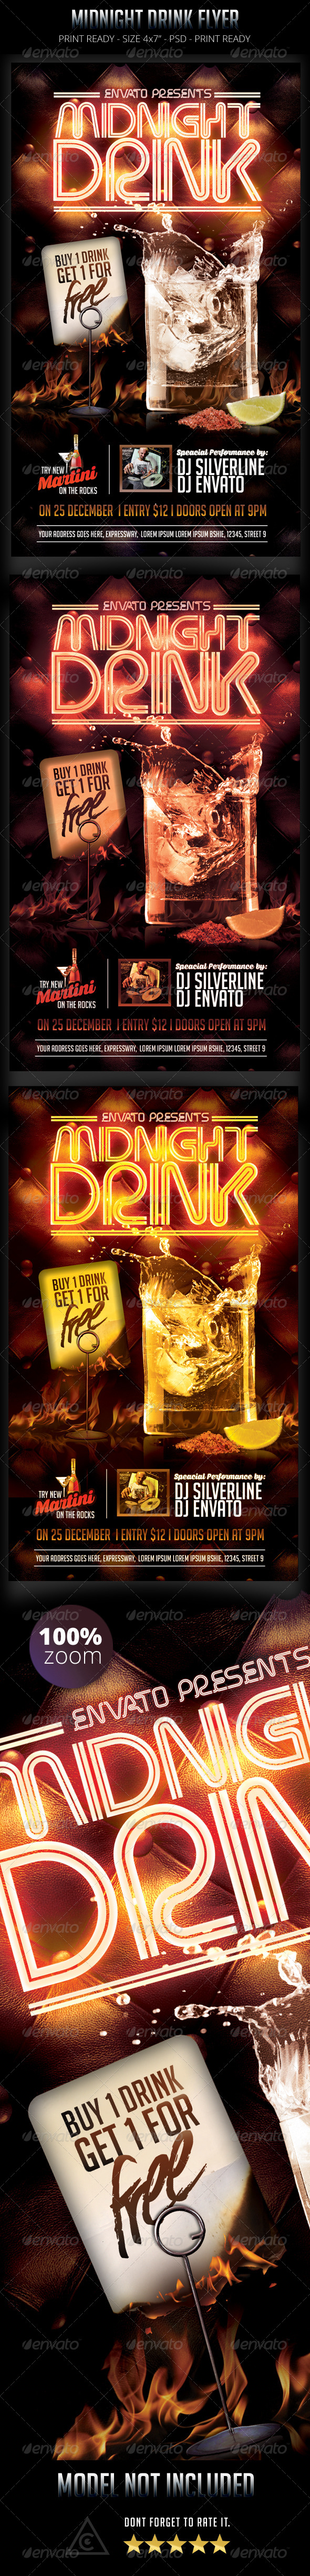 GraphicRiver Midnight Drink Flyer 8783175